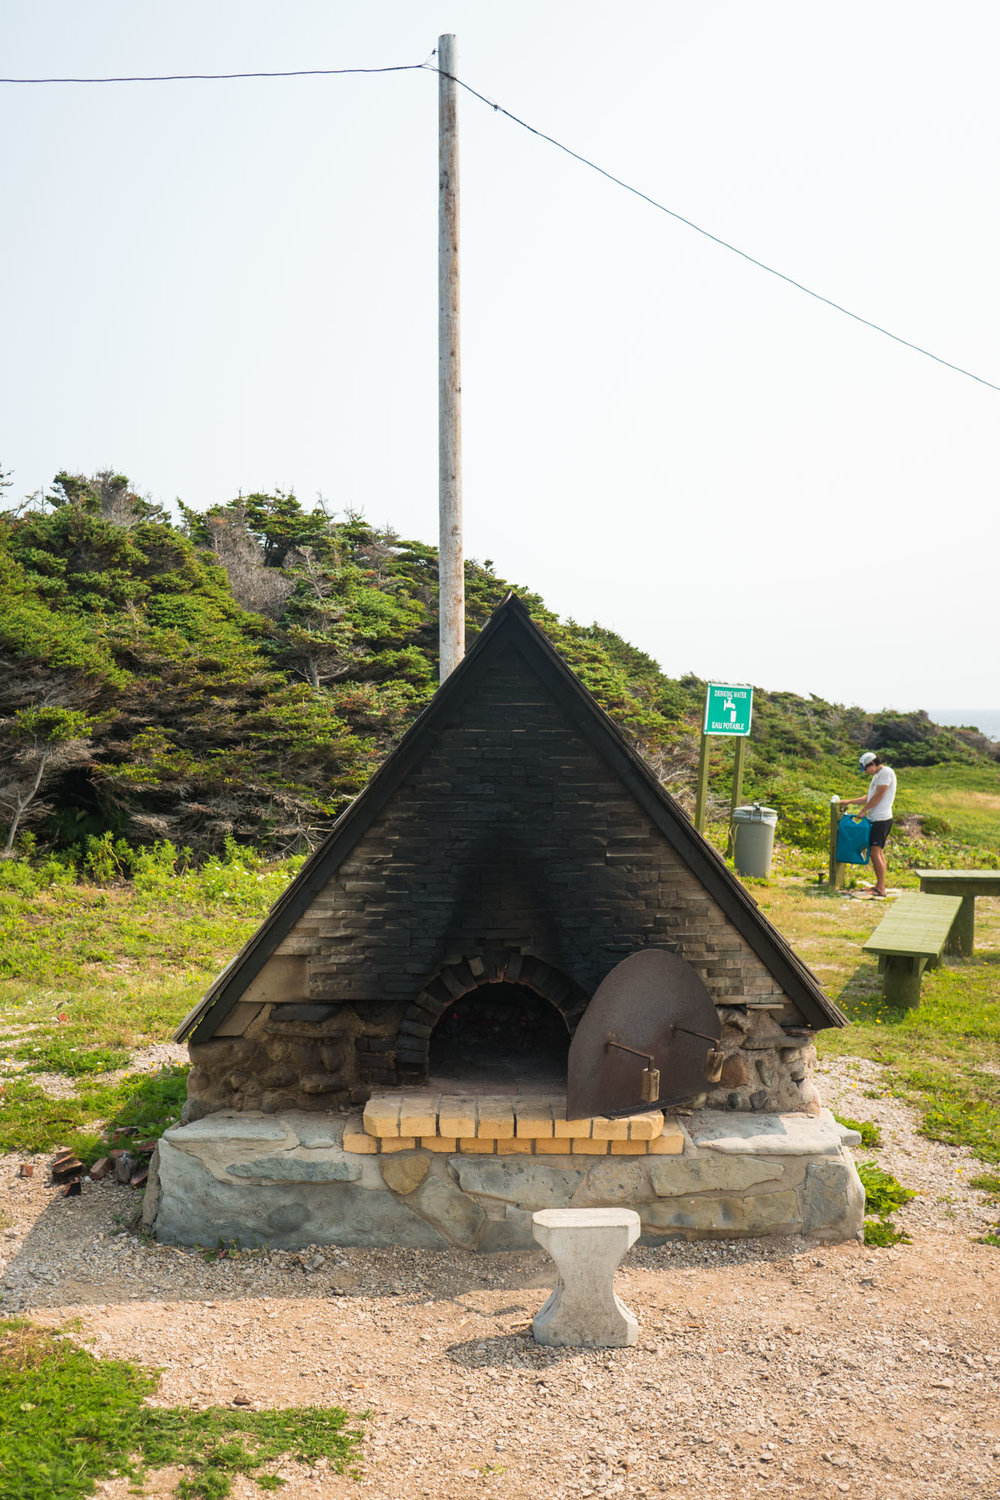 Bread ovens of Cape St. George